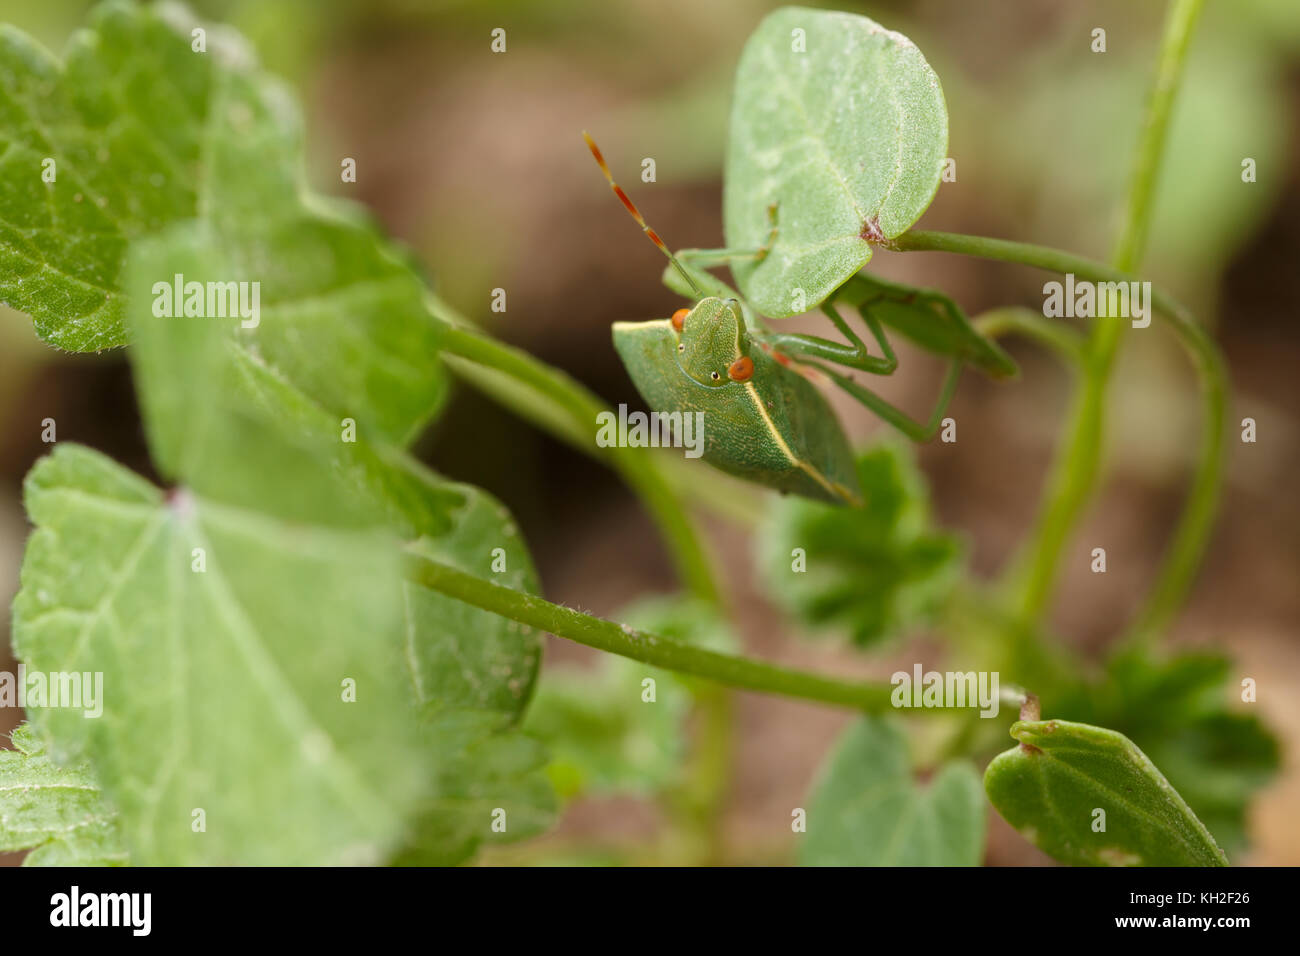 Detail of southern green shield bug getting safe by mimicking the environment. Mimicry of Nezara viridula to local - Stock Image